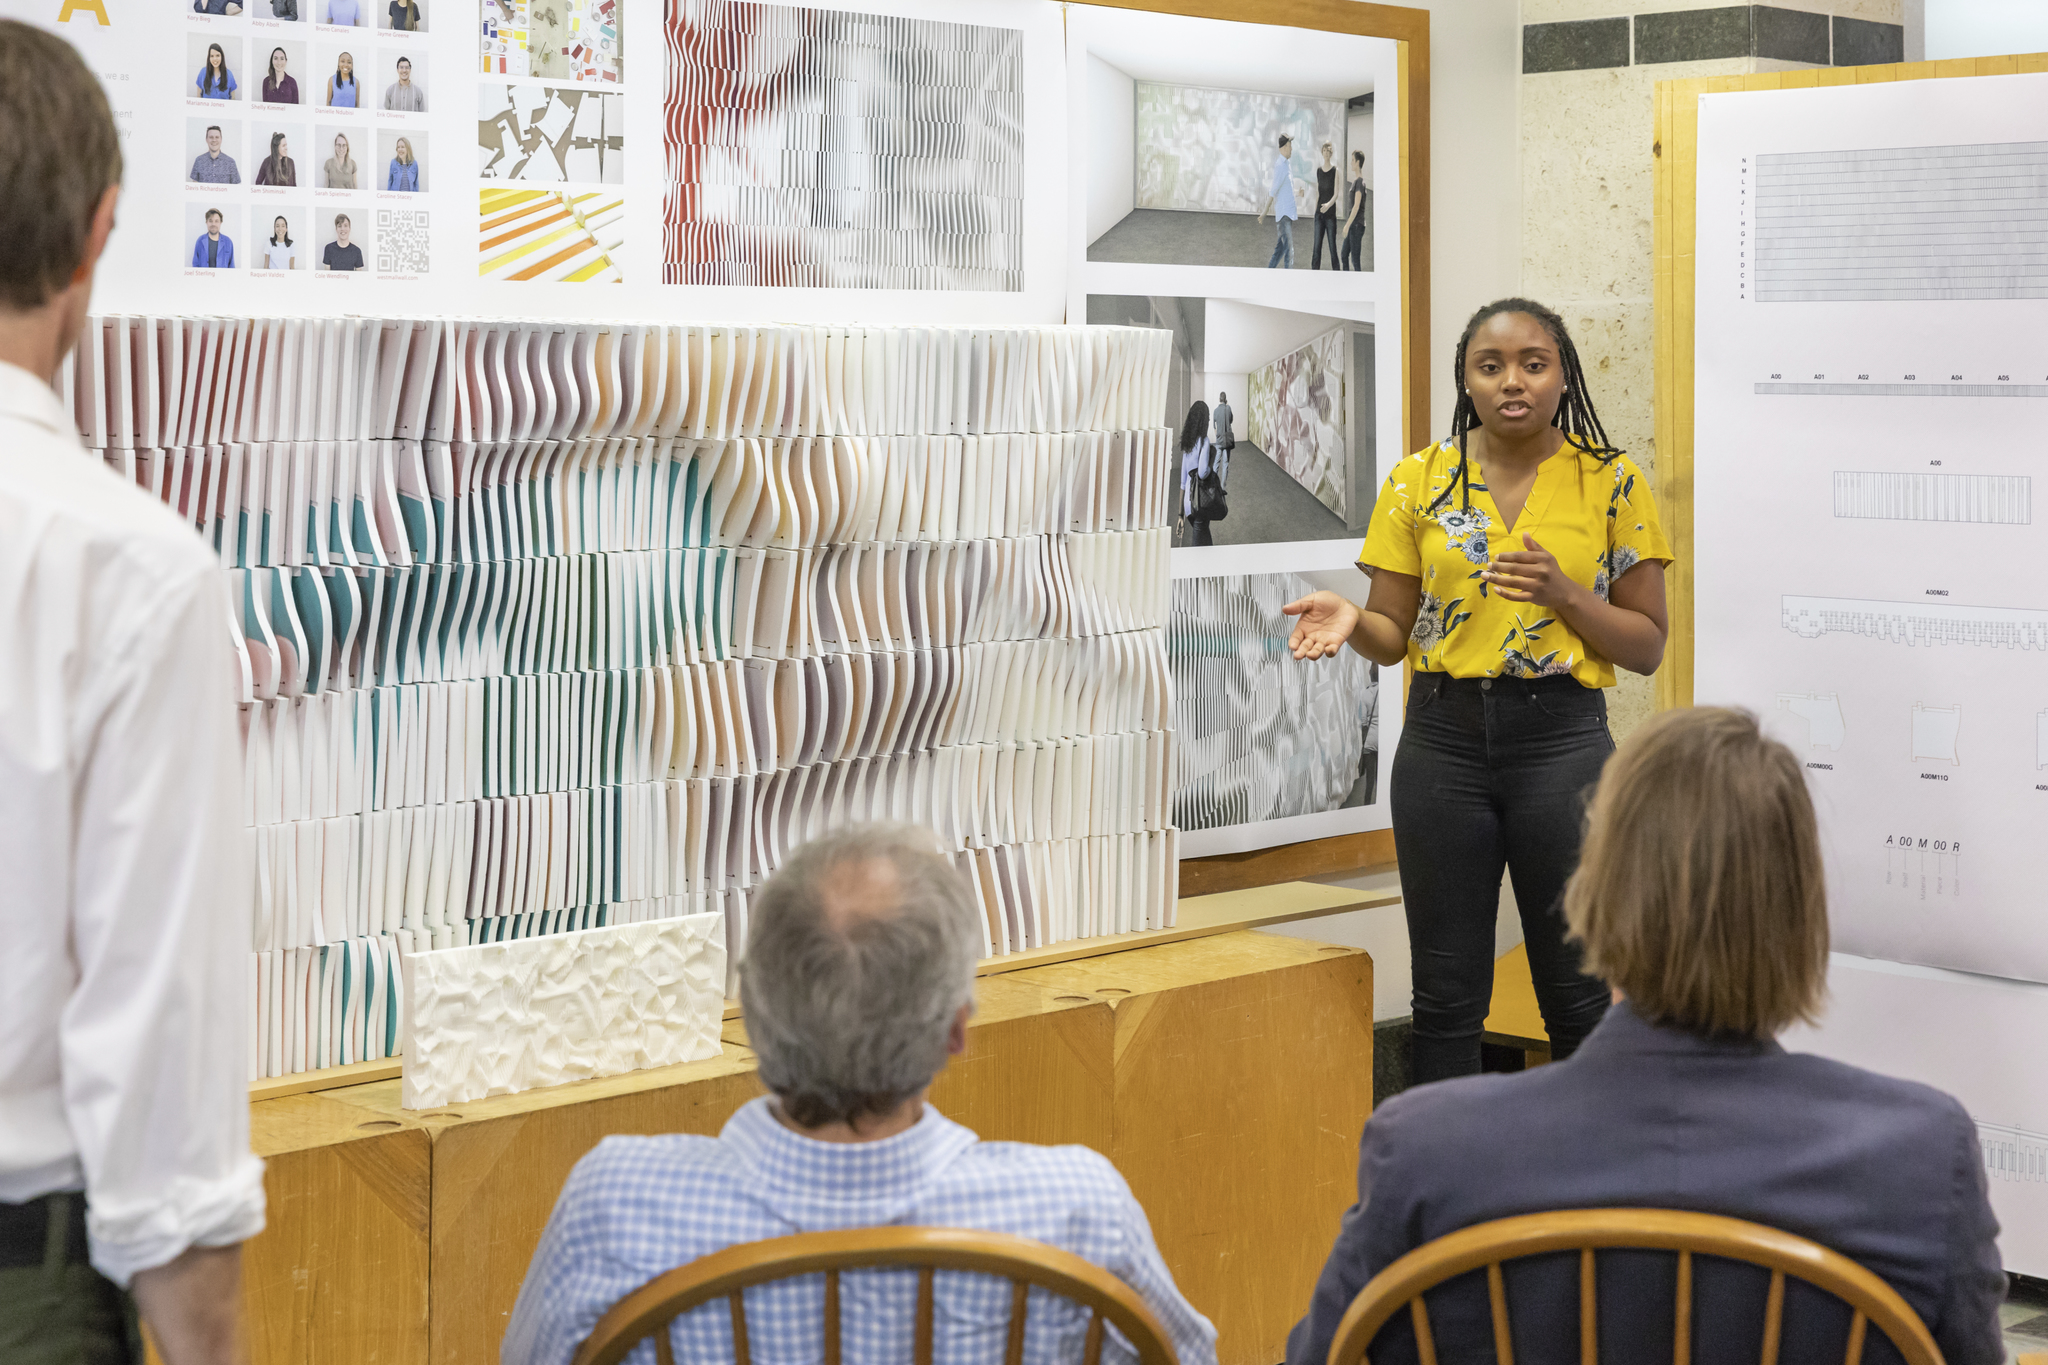 Student gives presentation of ONDA Wall during final reviews to a seated panel